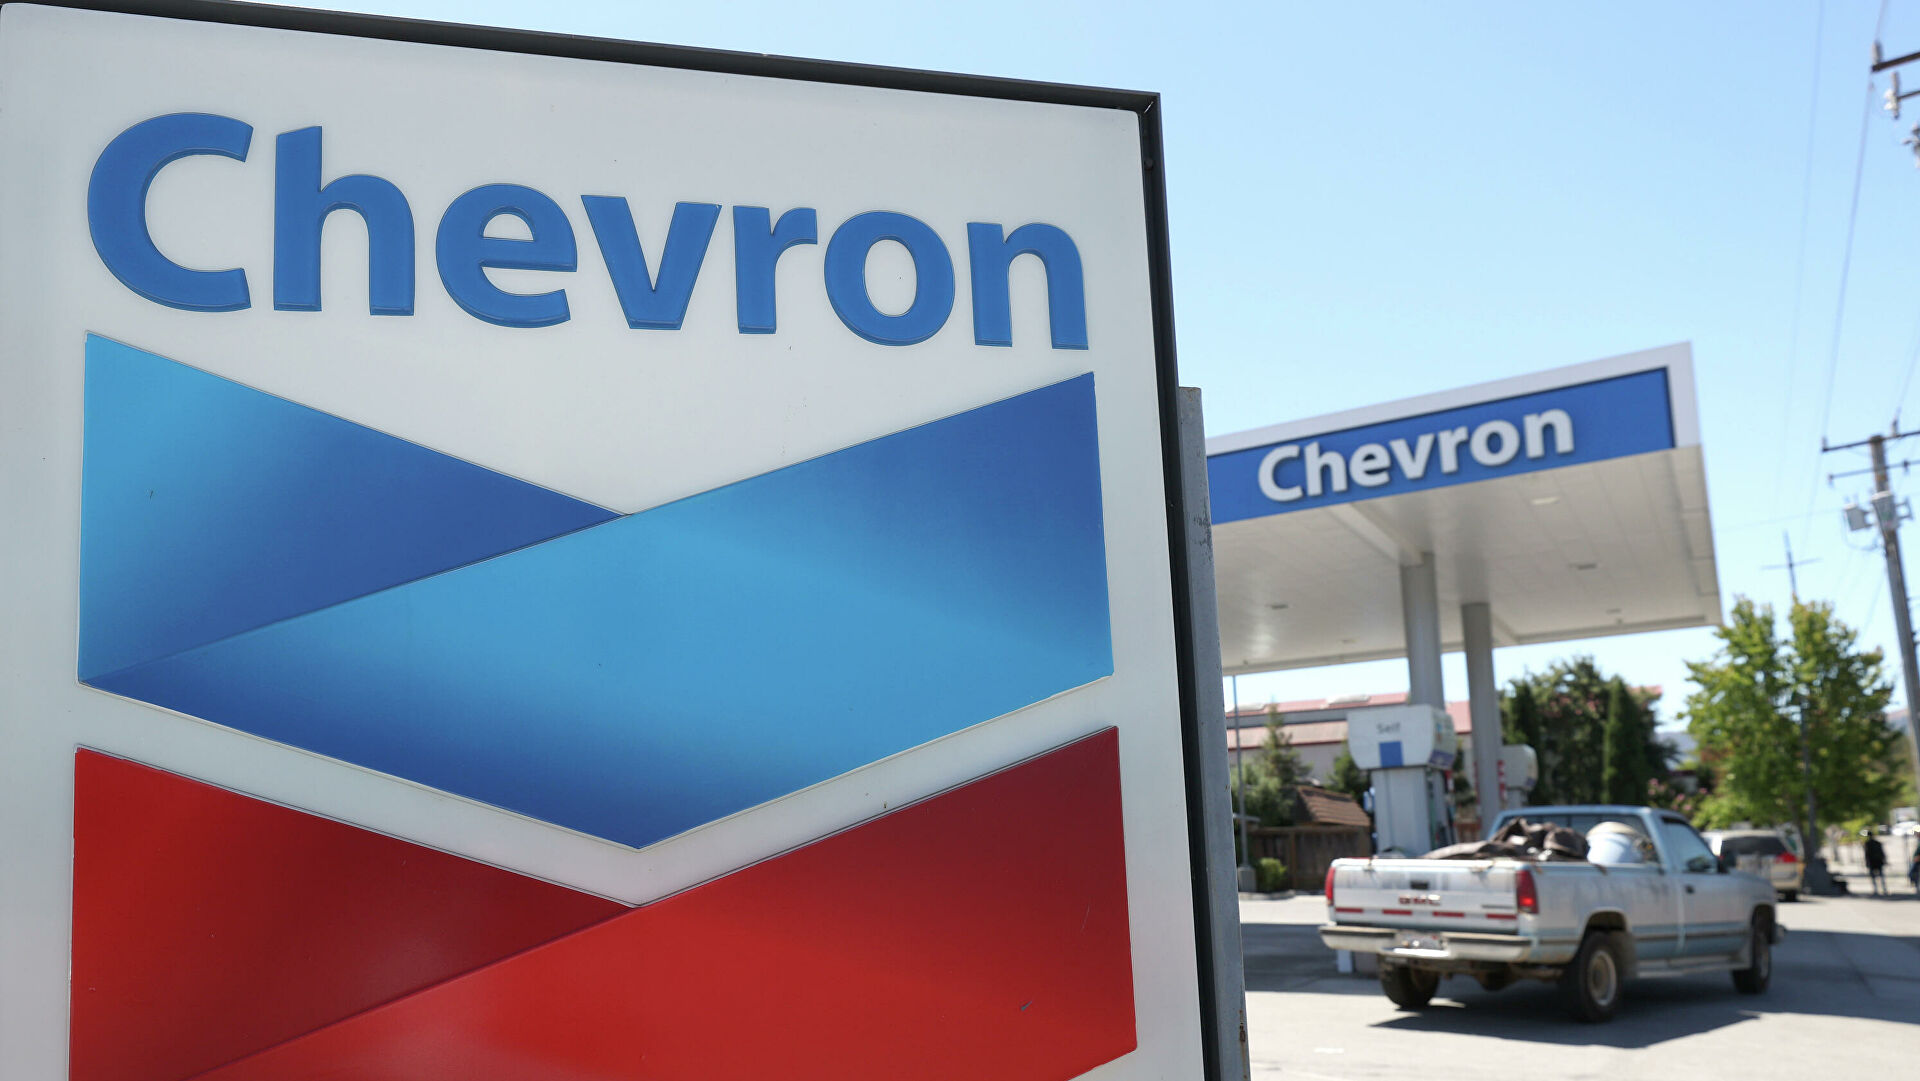 Chevron made a net loss of $ 4.9 billion in nine months